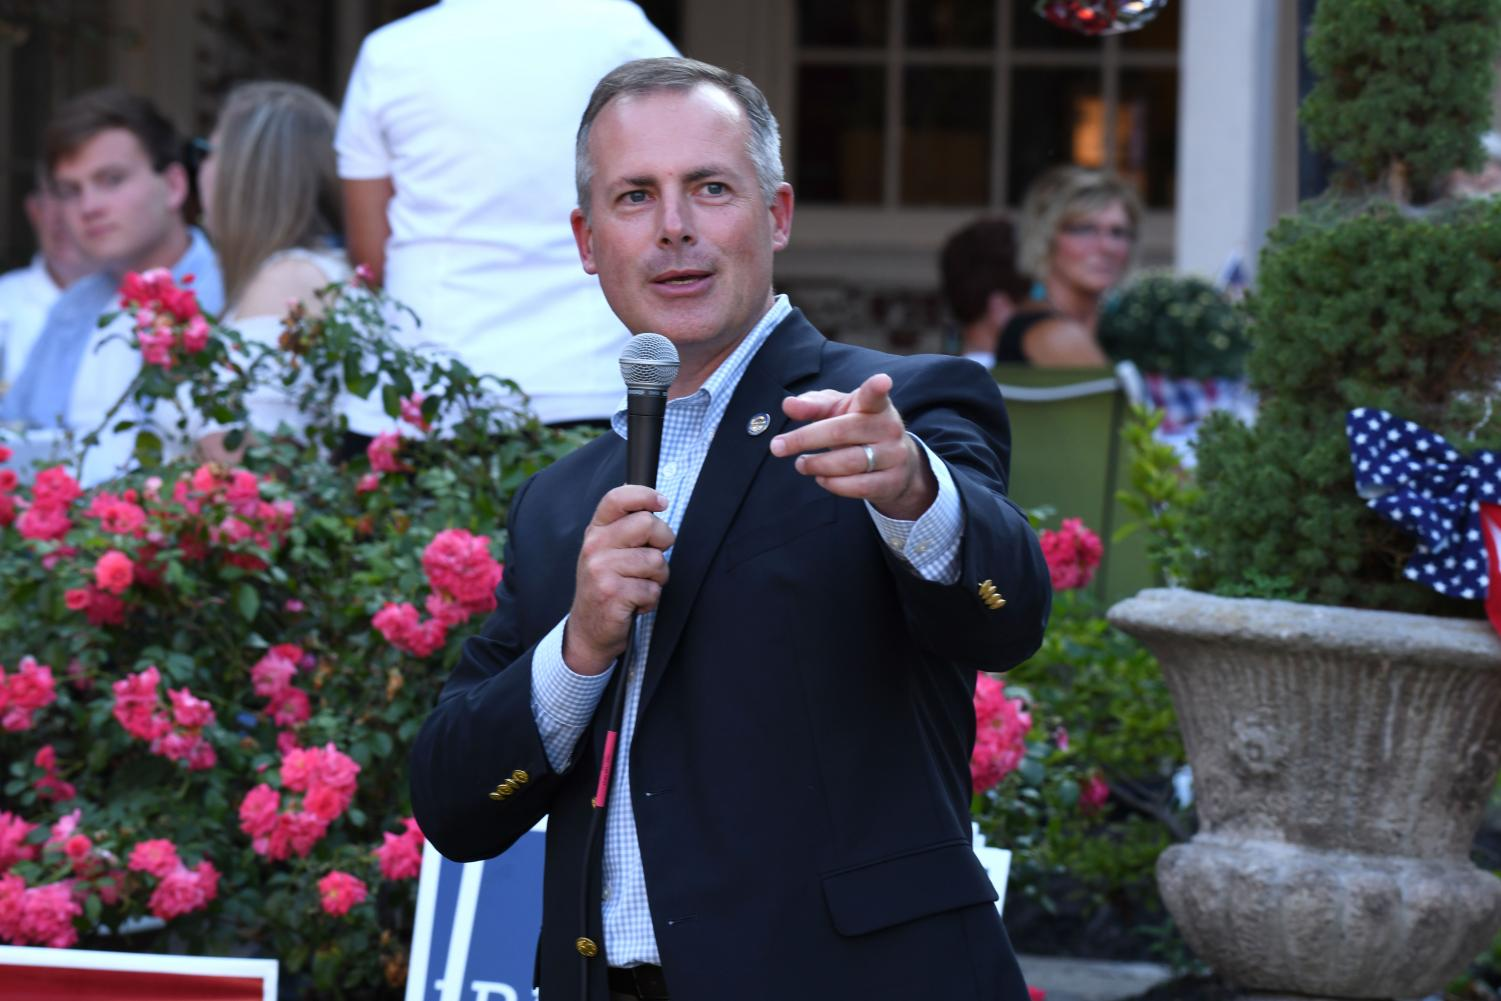 State Treasurer Robert Sprague at the 2018 Party on the Porch event.